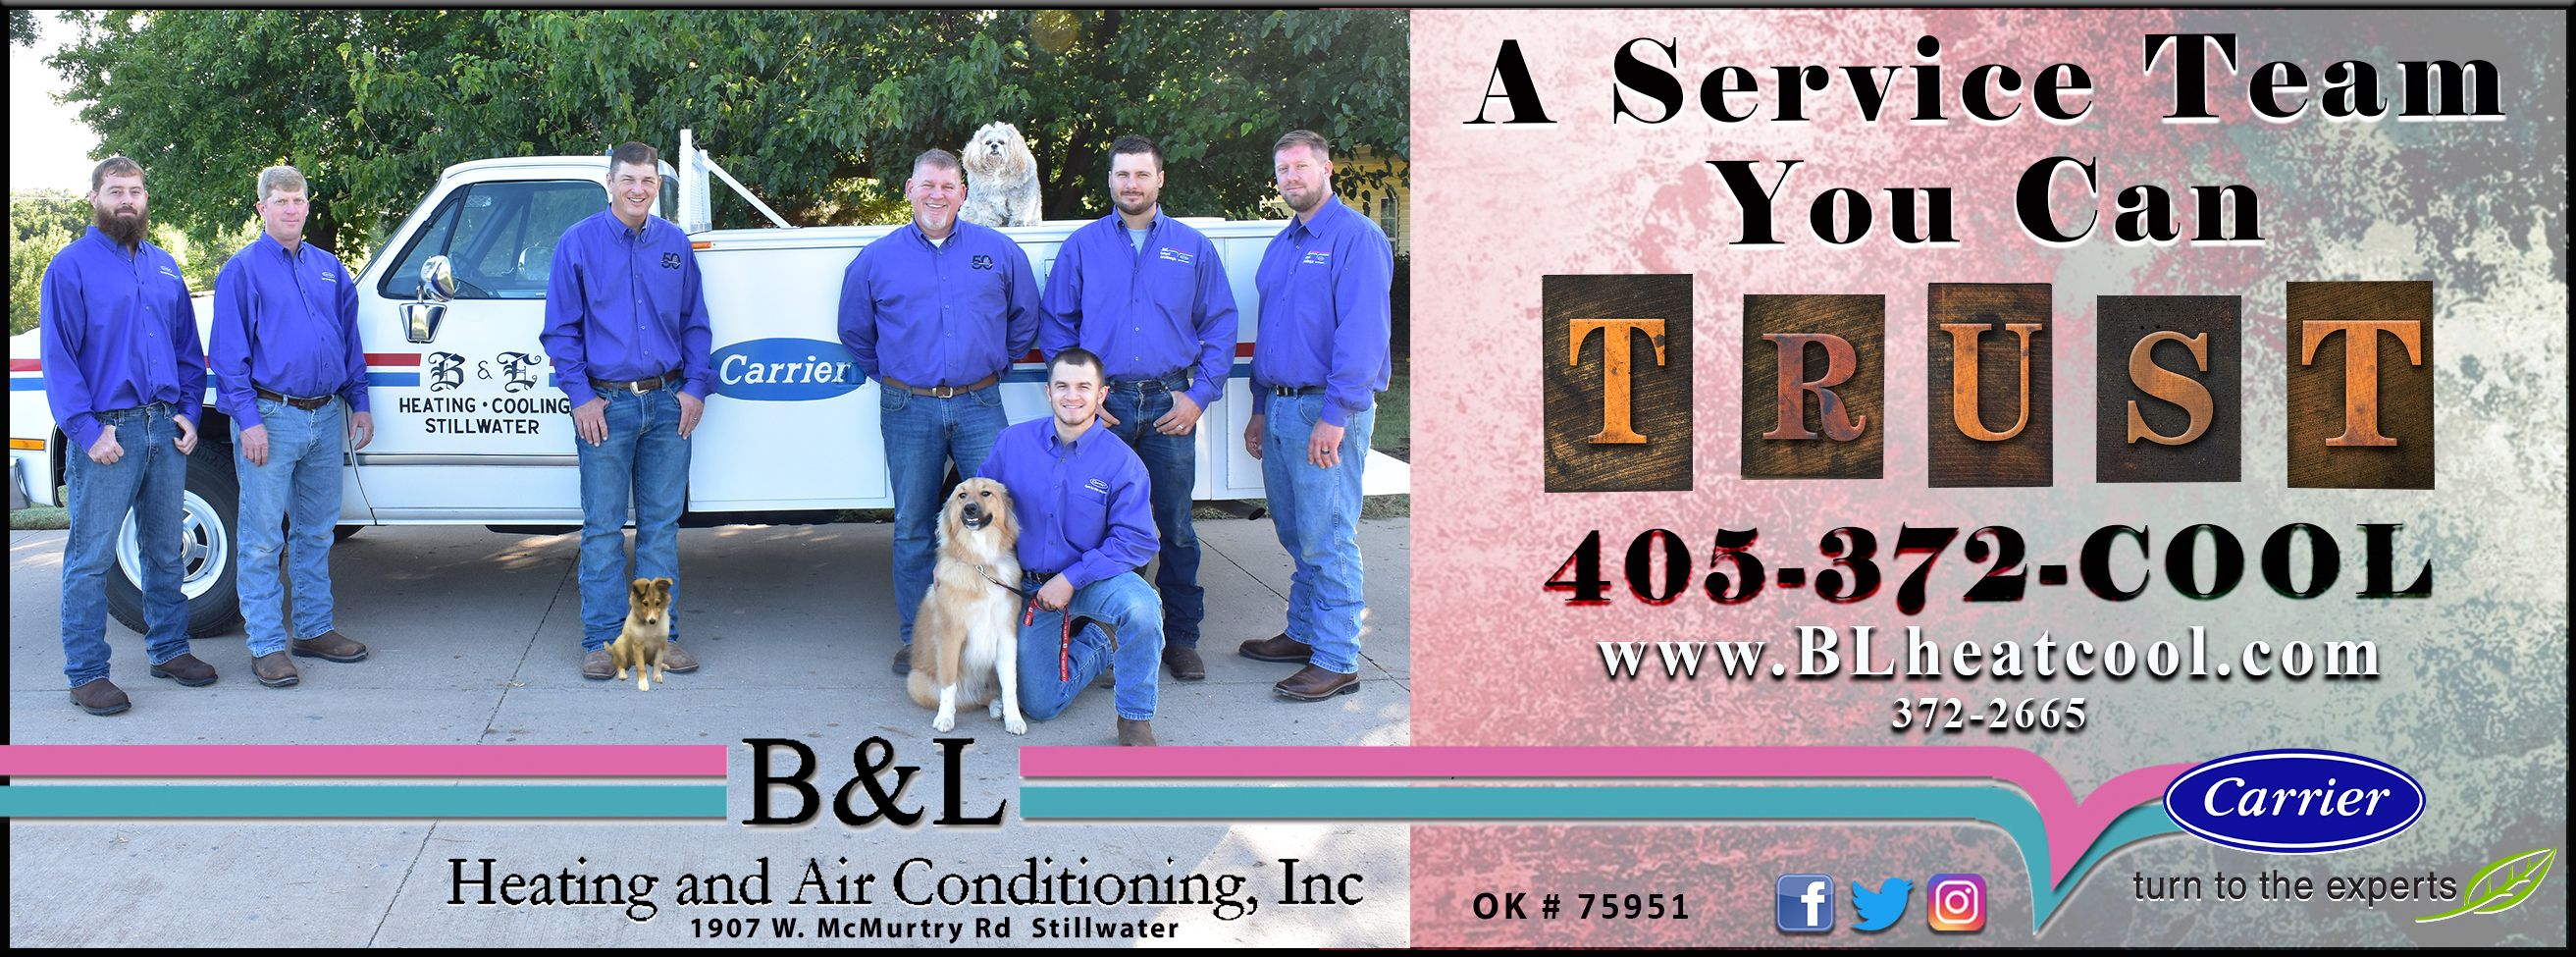 Pin by BuL Heating and Air Conditioning Inc on BuL Ads Pinterest